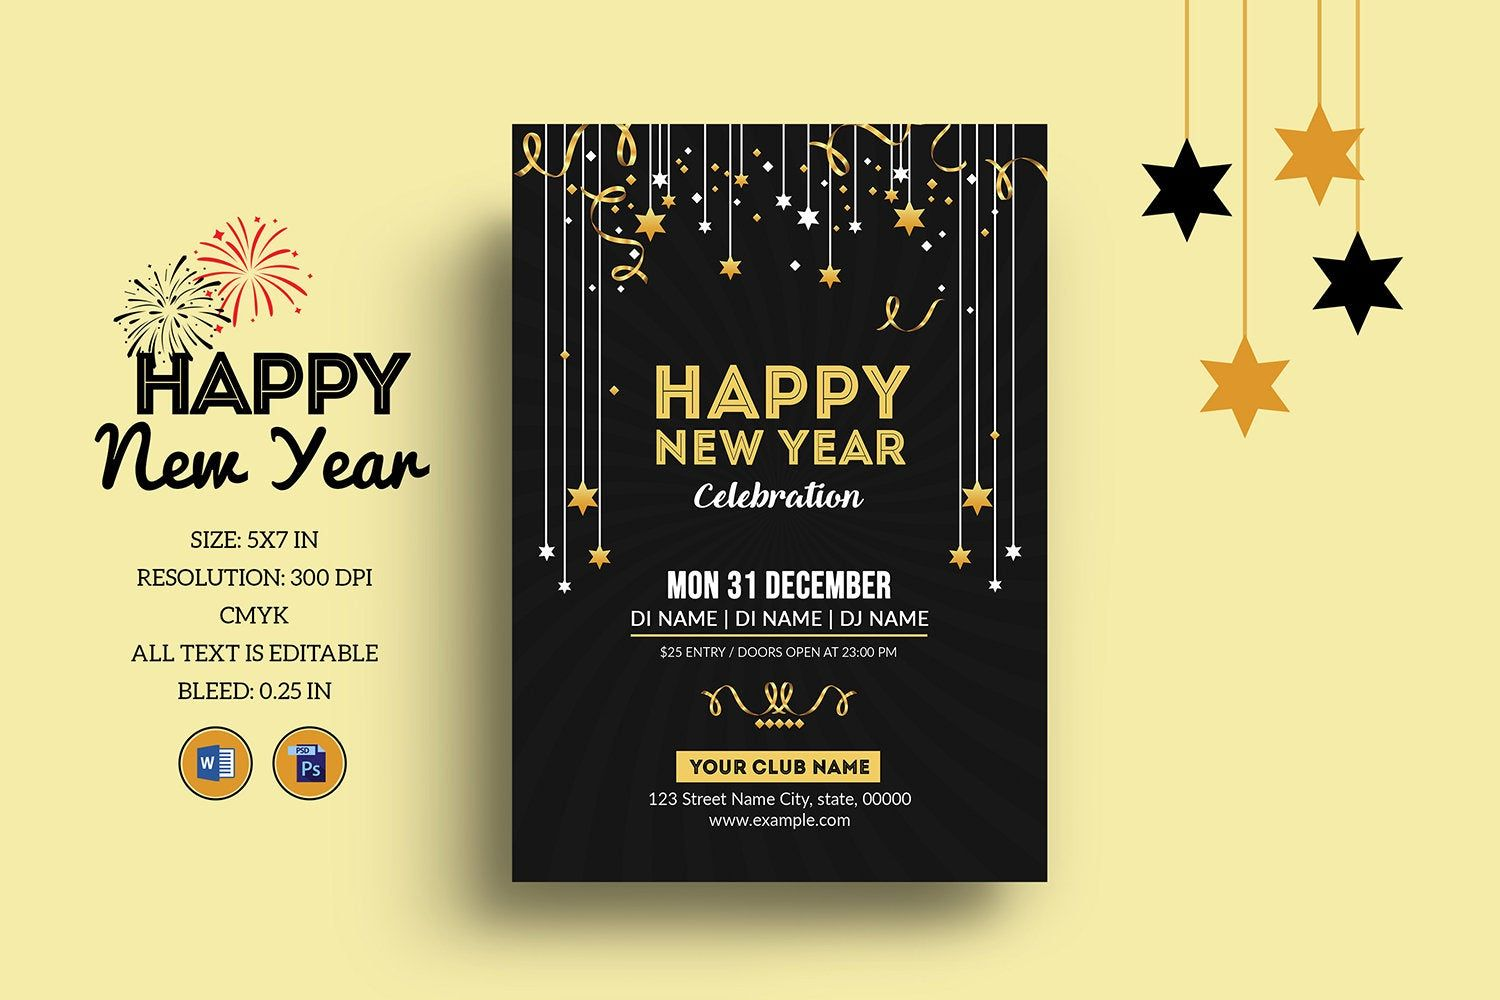 New Year Party Flyer New Year Invitation Template Ms Word And Photoshop Template Instant Download Party Flyer New Years Party Invitation Template